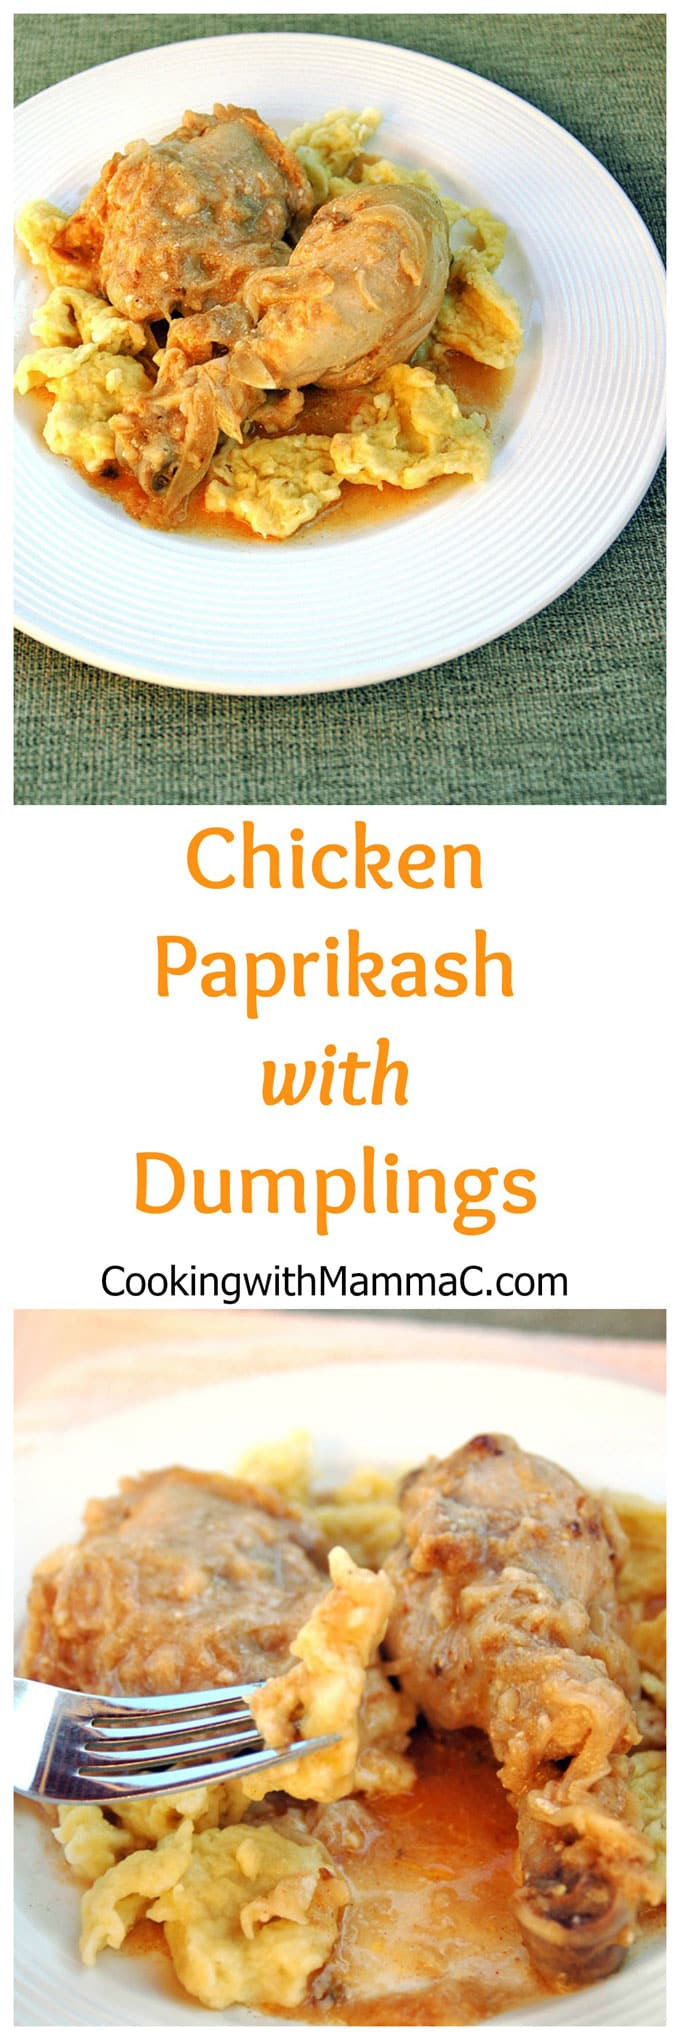 Chicken Paprikash with Dumplings is a family favorite and one of the most popular recipes on Cooking with Mamma C! I'm half Hungarian, so I had to get this right!